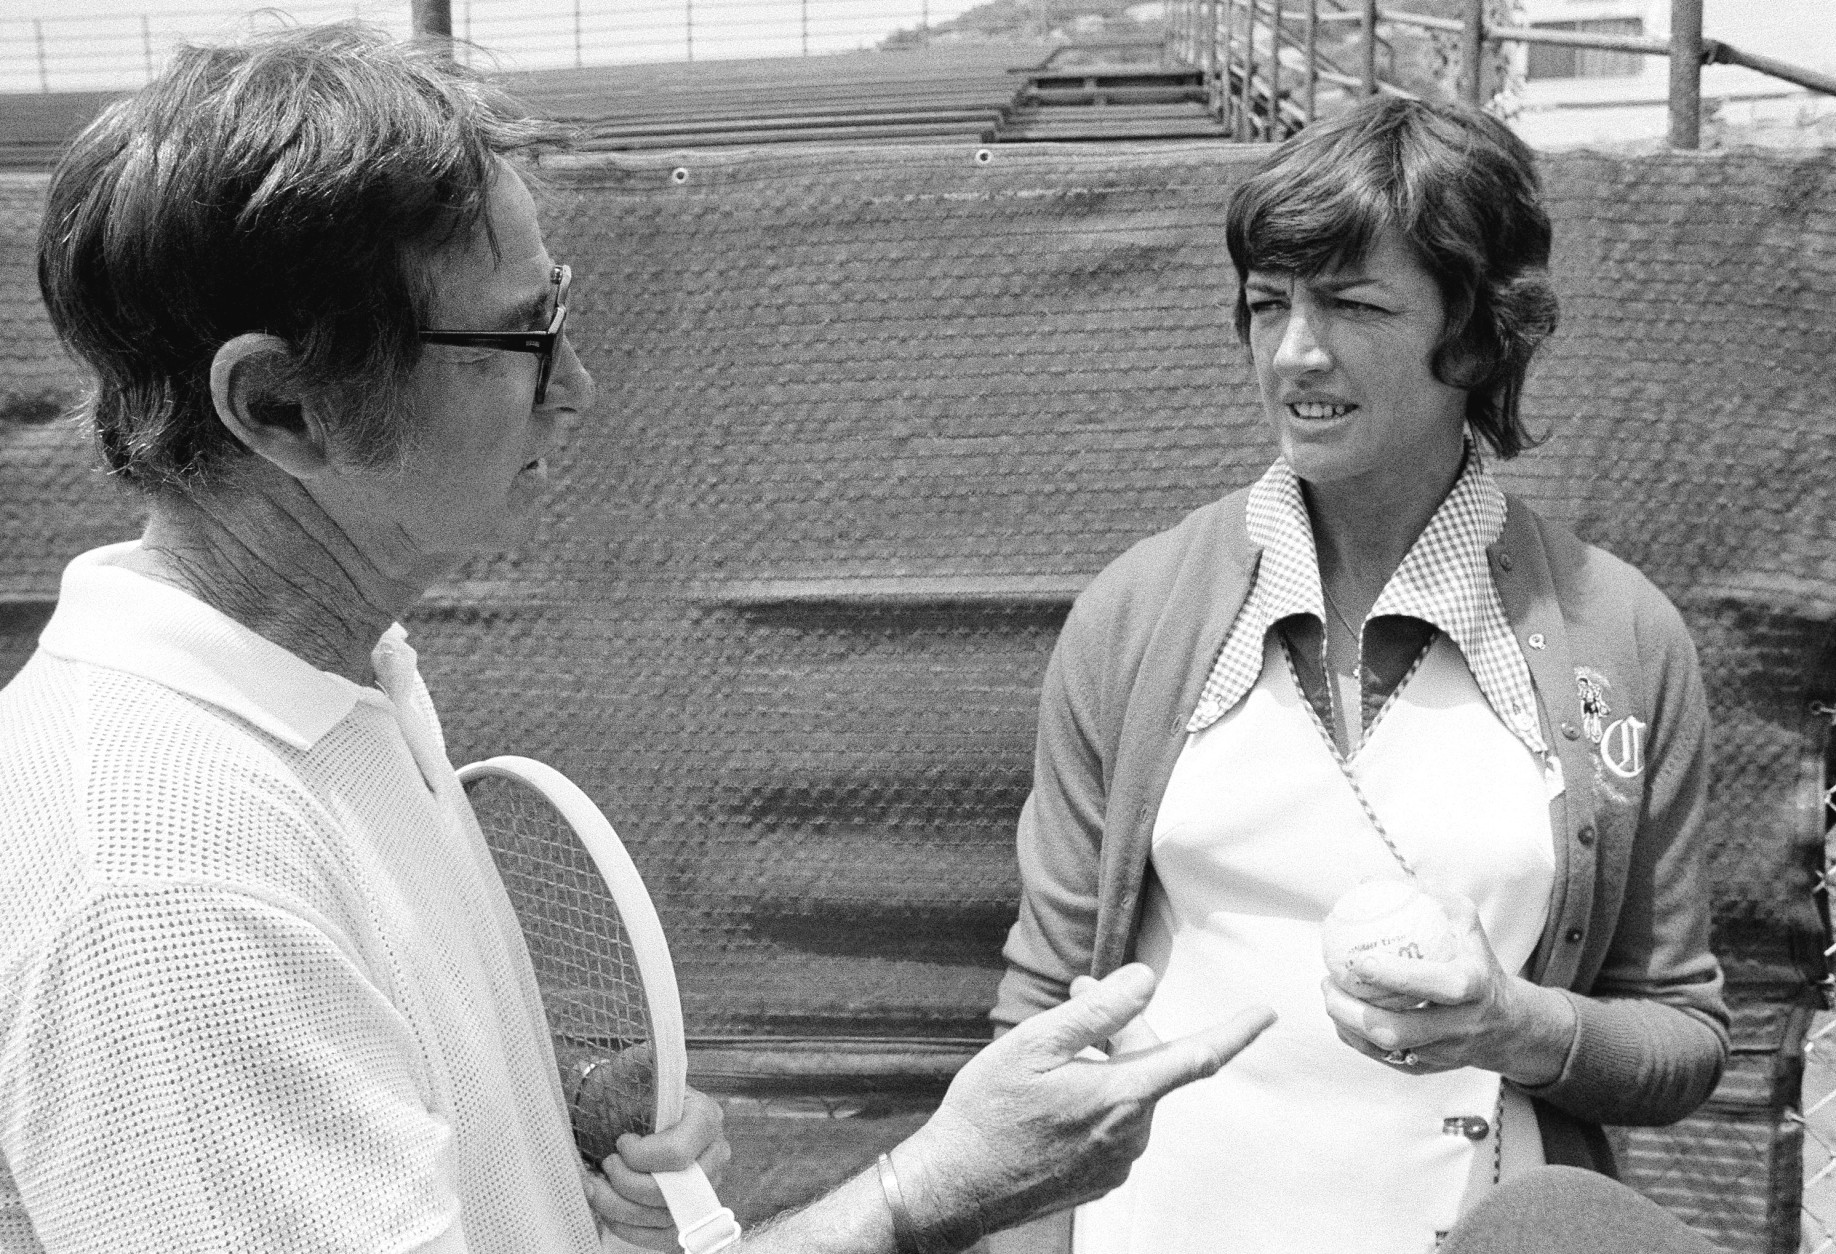 Bobby Riggs, former Wimbledon tennis star, talks with Margaret Court about heavy duty tennis ball she has selected for their $10,000 challenge match in Ramona, Calif., May 12, 1973. She won a coin toss on Thursday and selected the heavier ball. Riggs attempted to talk Margaret into using a livelier ball in their best-of-three set match. Margaret stuck with her original decision. (AP Photo/Wally Fong)